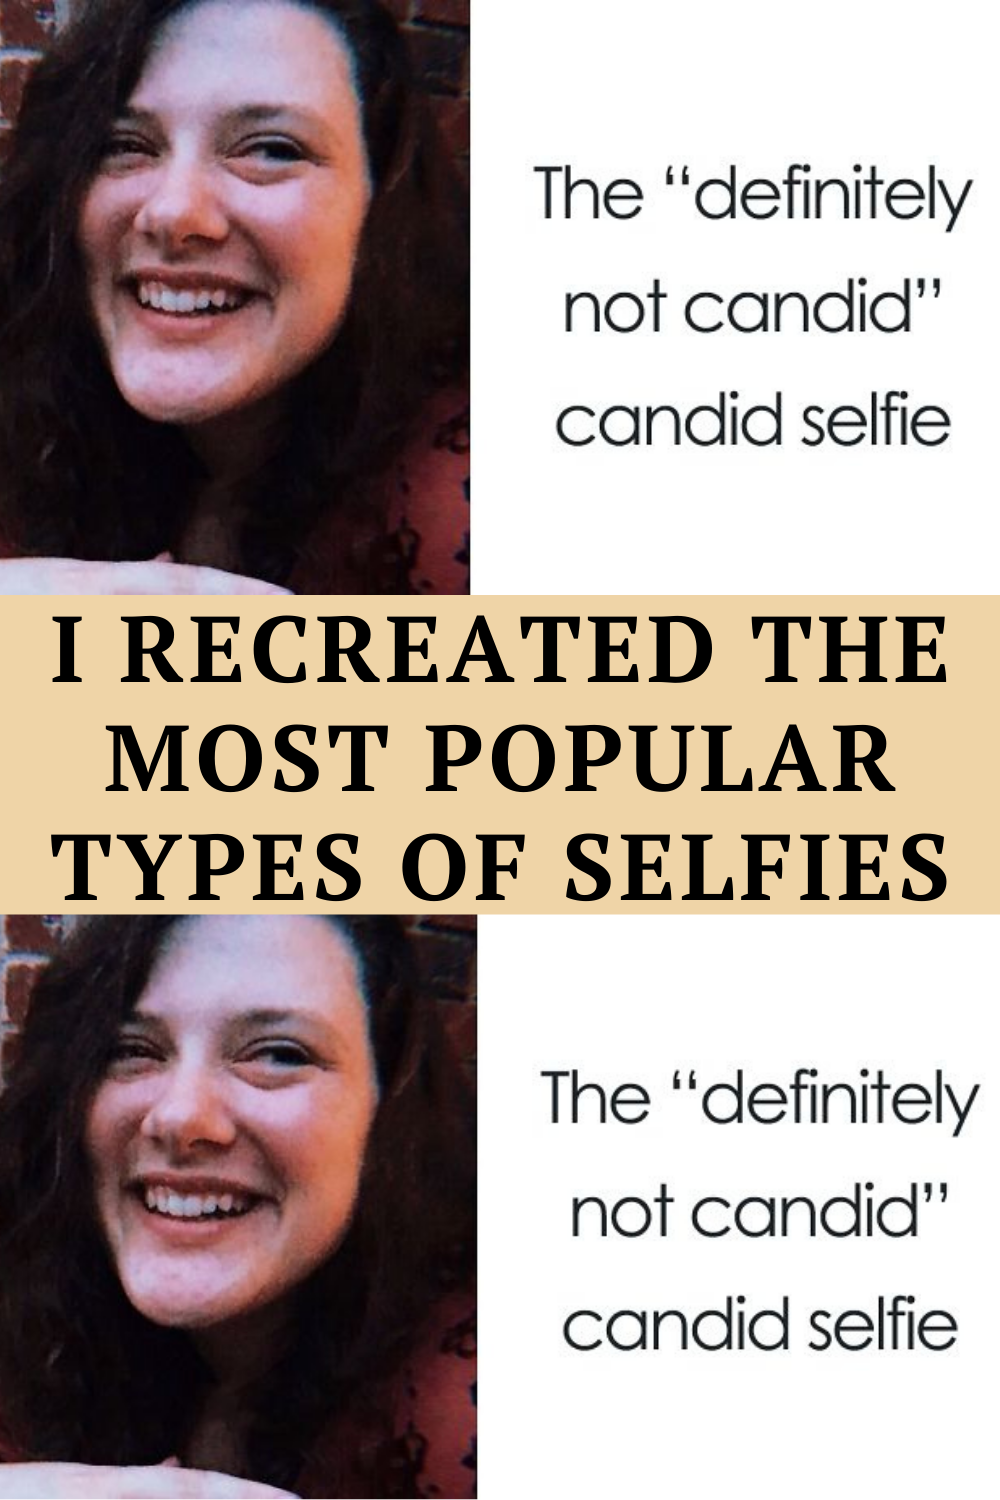 Different types of selfies